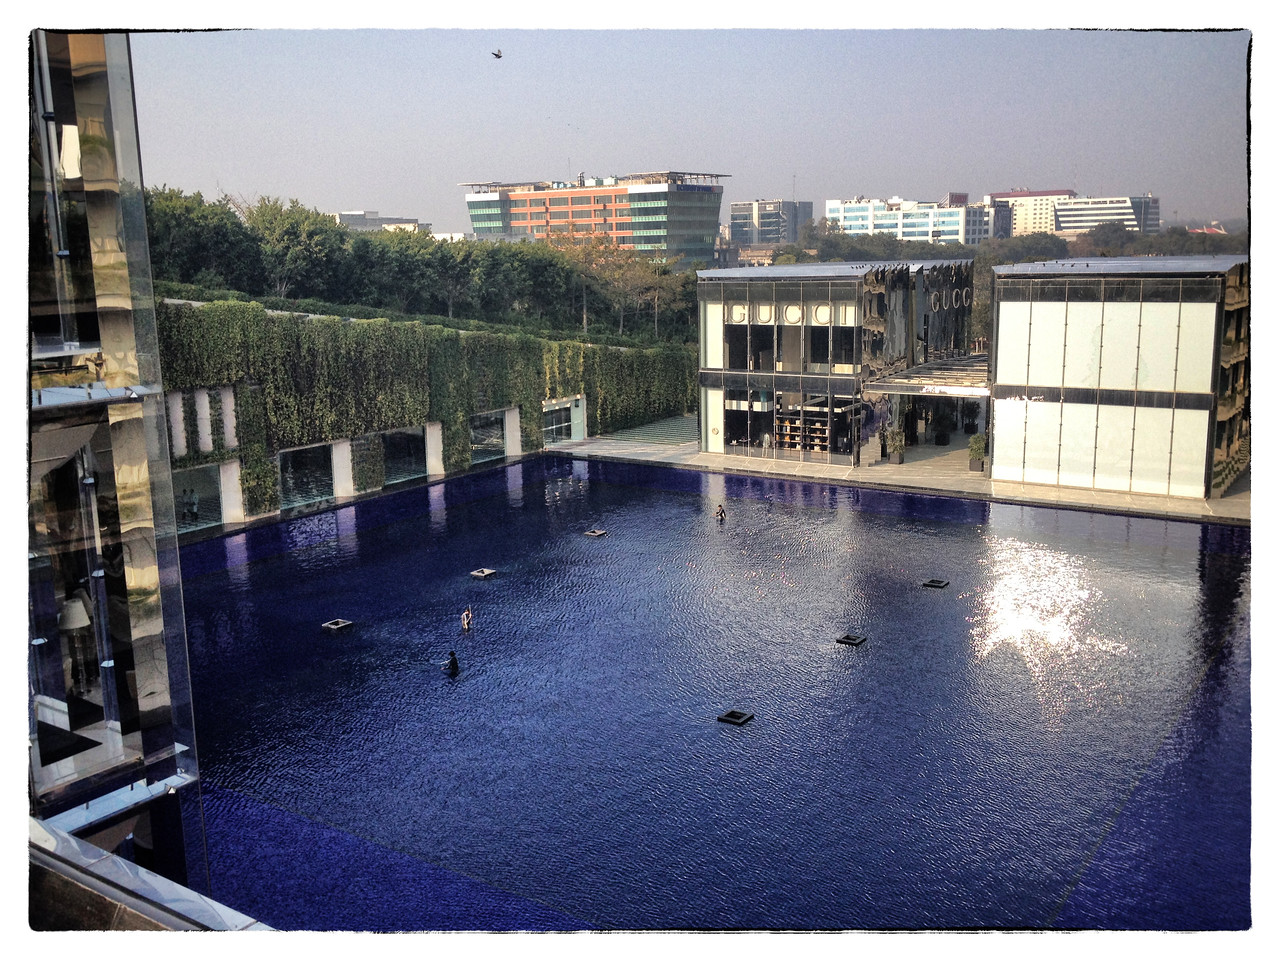 Delhi, India, Feb 2013 -   View of the large pond,  which is also lit at nights, seen at Oberoi in Gurgaon.An area where large commercial and residential projects are coming up but lacks infrastructure for clean water.     Images for the Global Post's special report -   The Great Divide:  Global income inequality and its cost    Photograph:  Sami SIVA